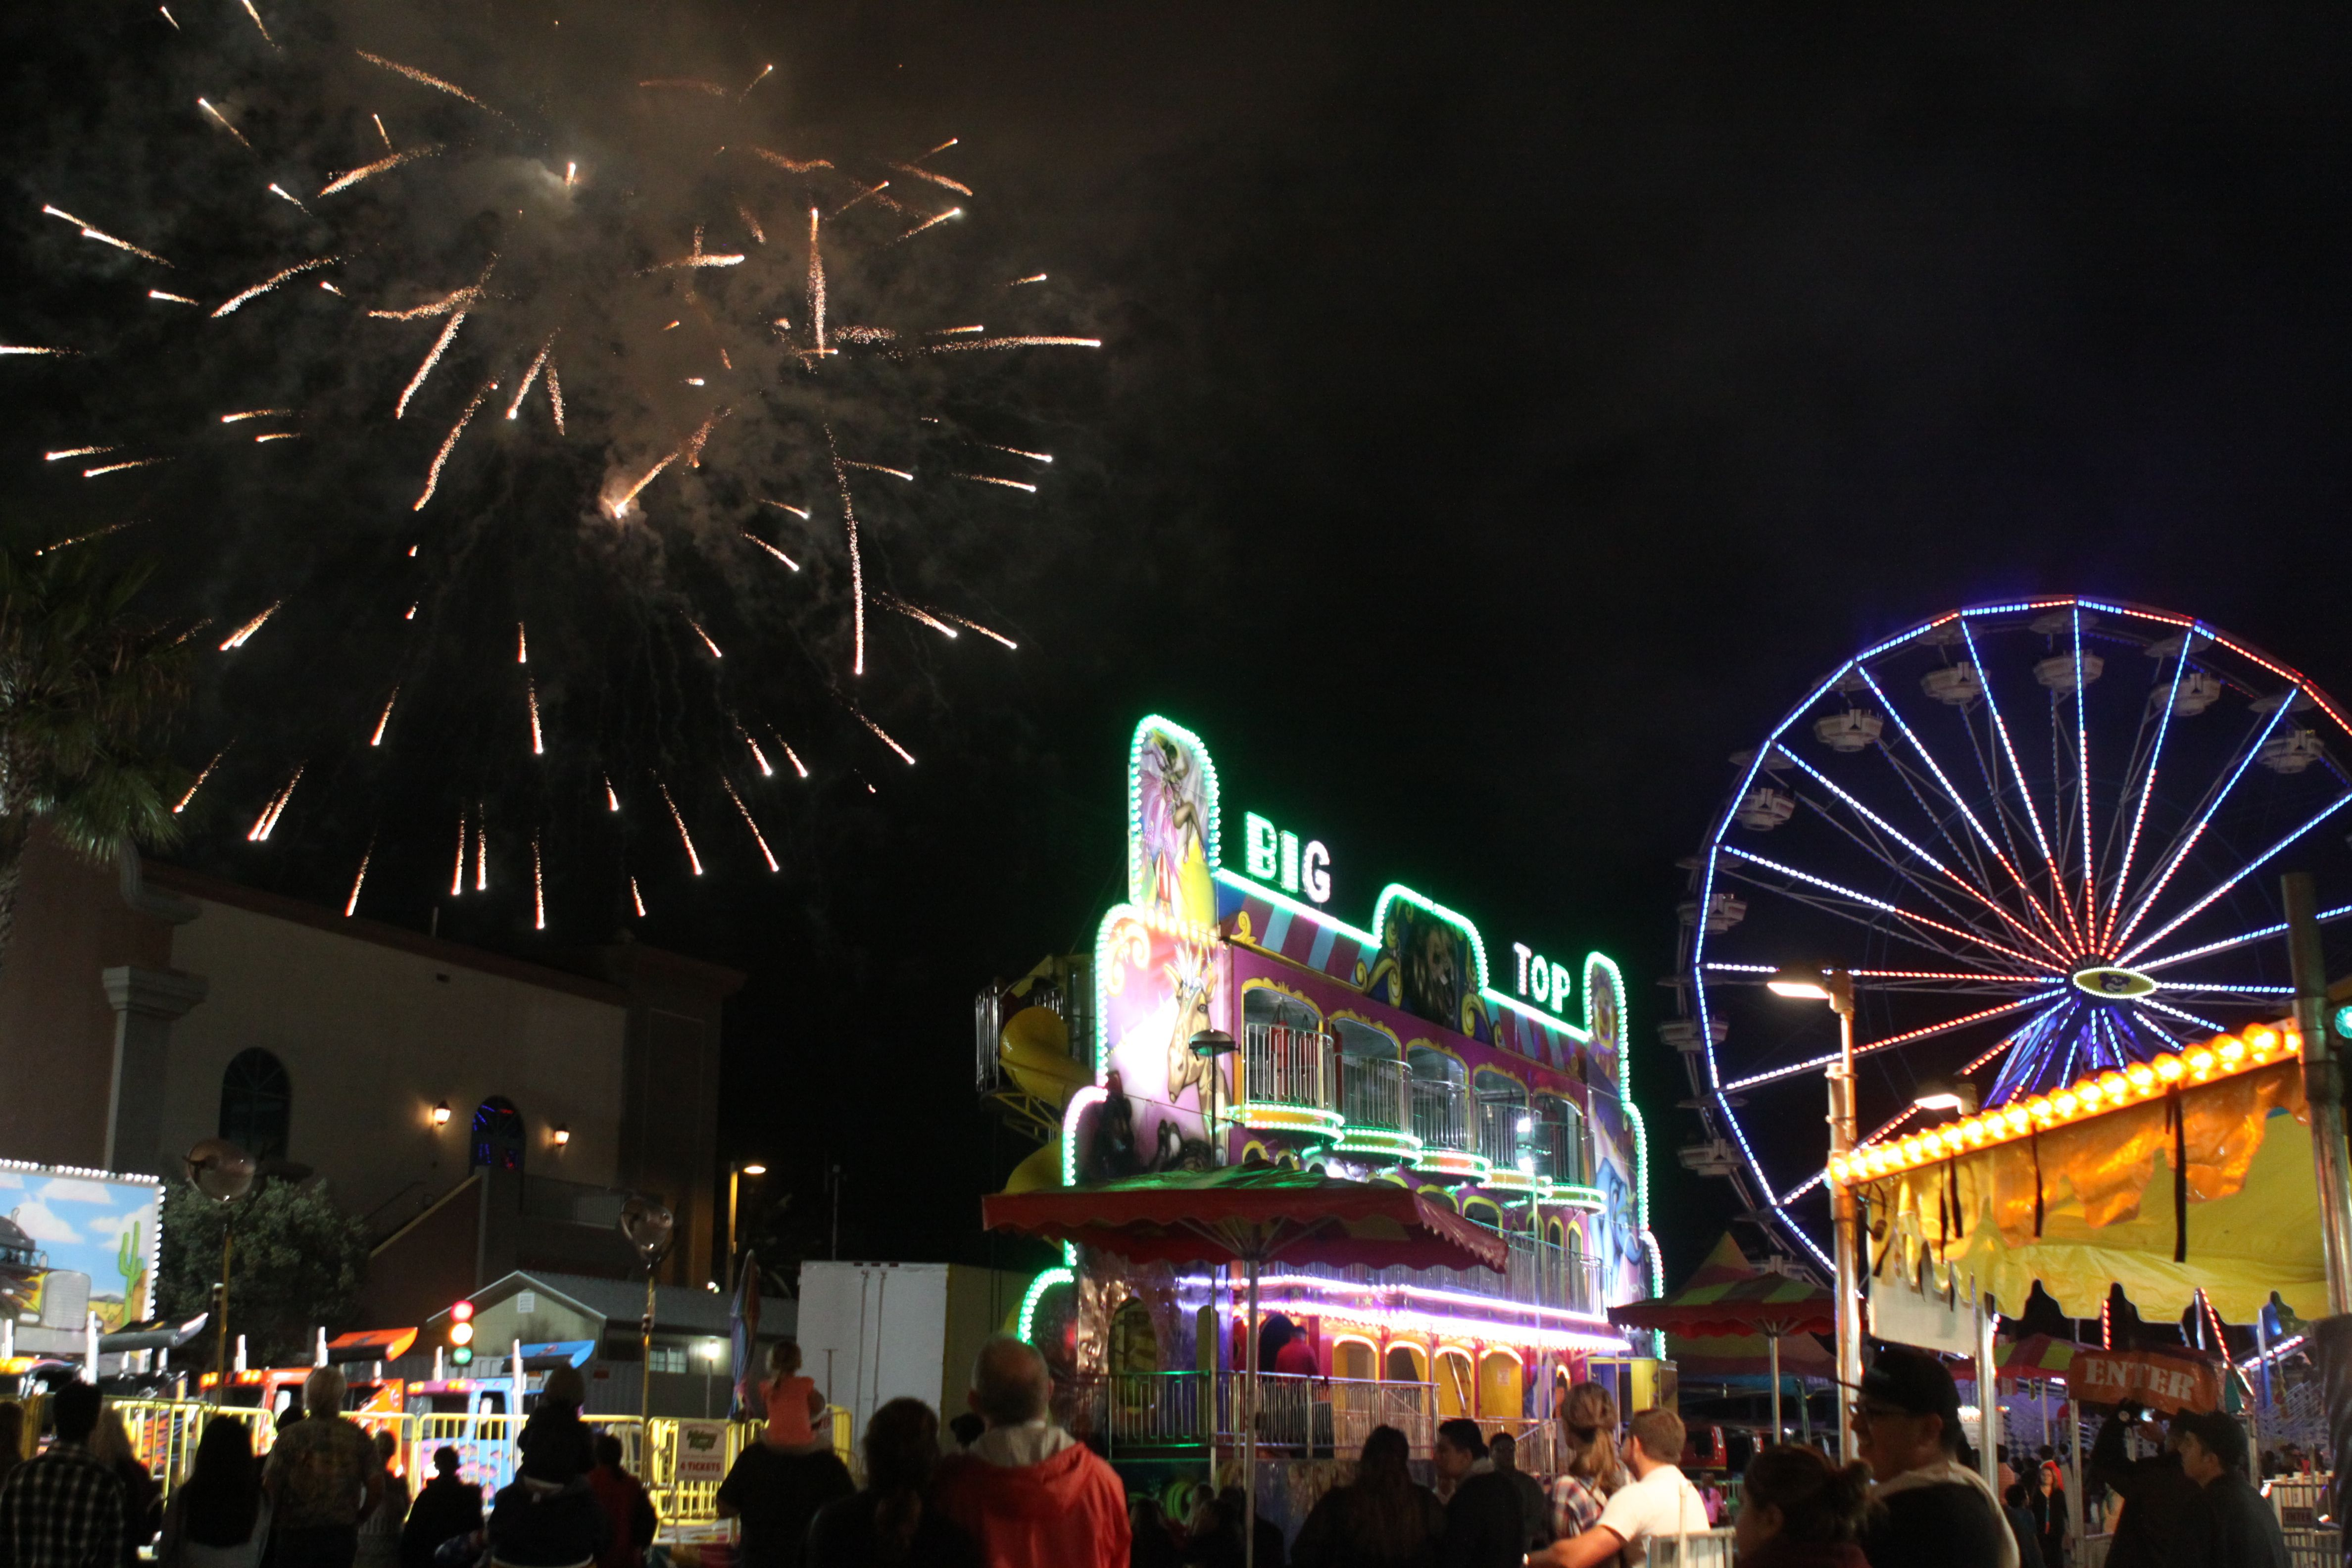 fireworks over the carnival midway at the ventura county fair. 2014